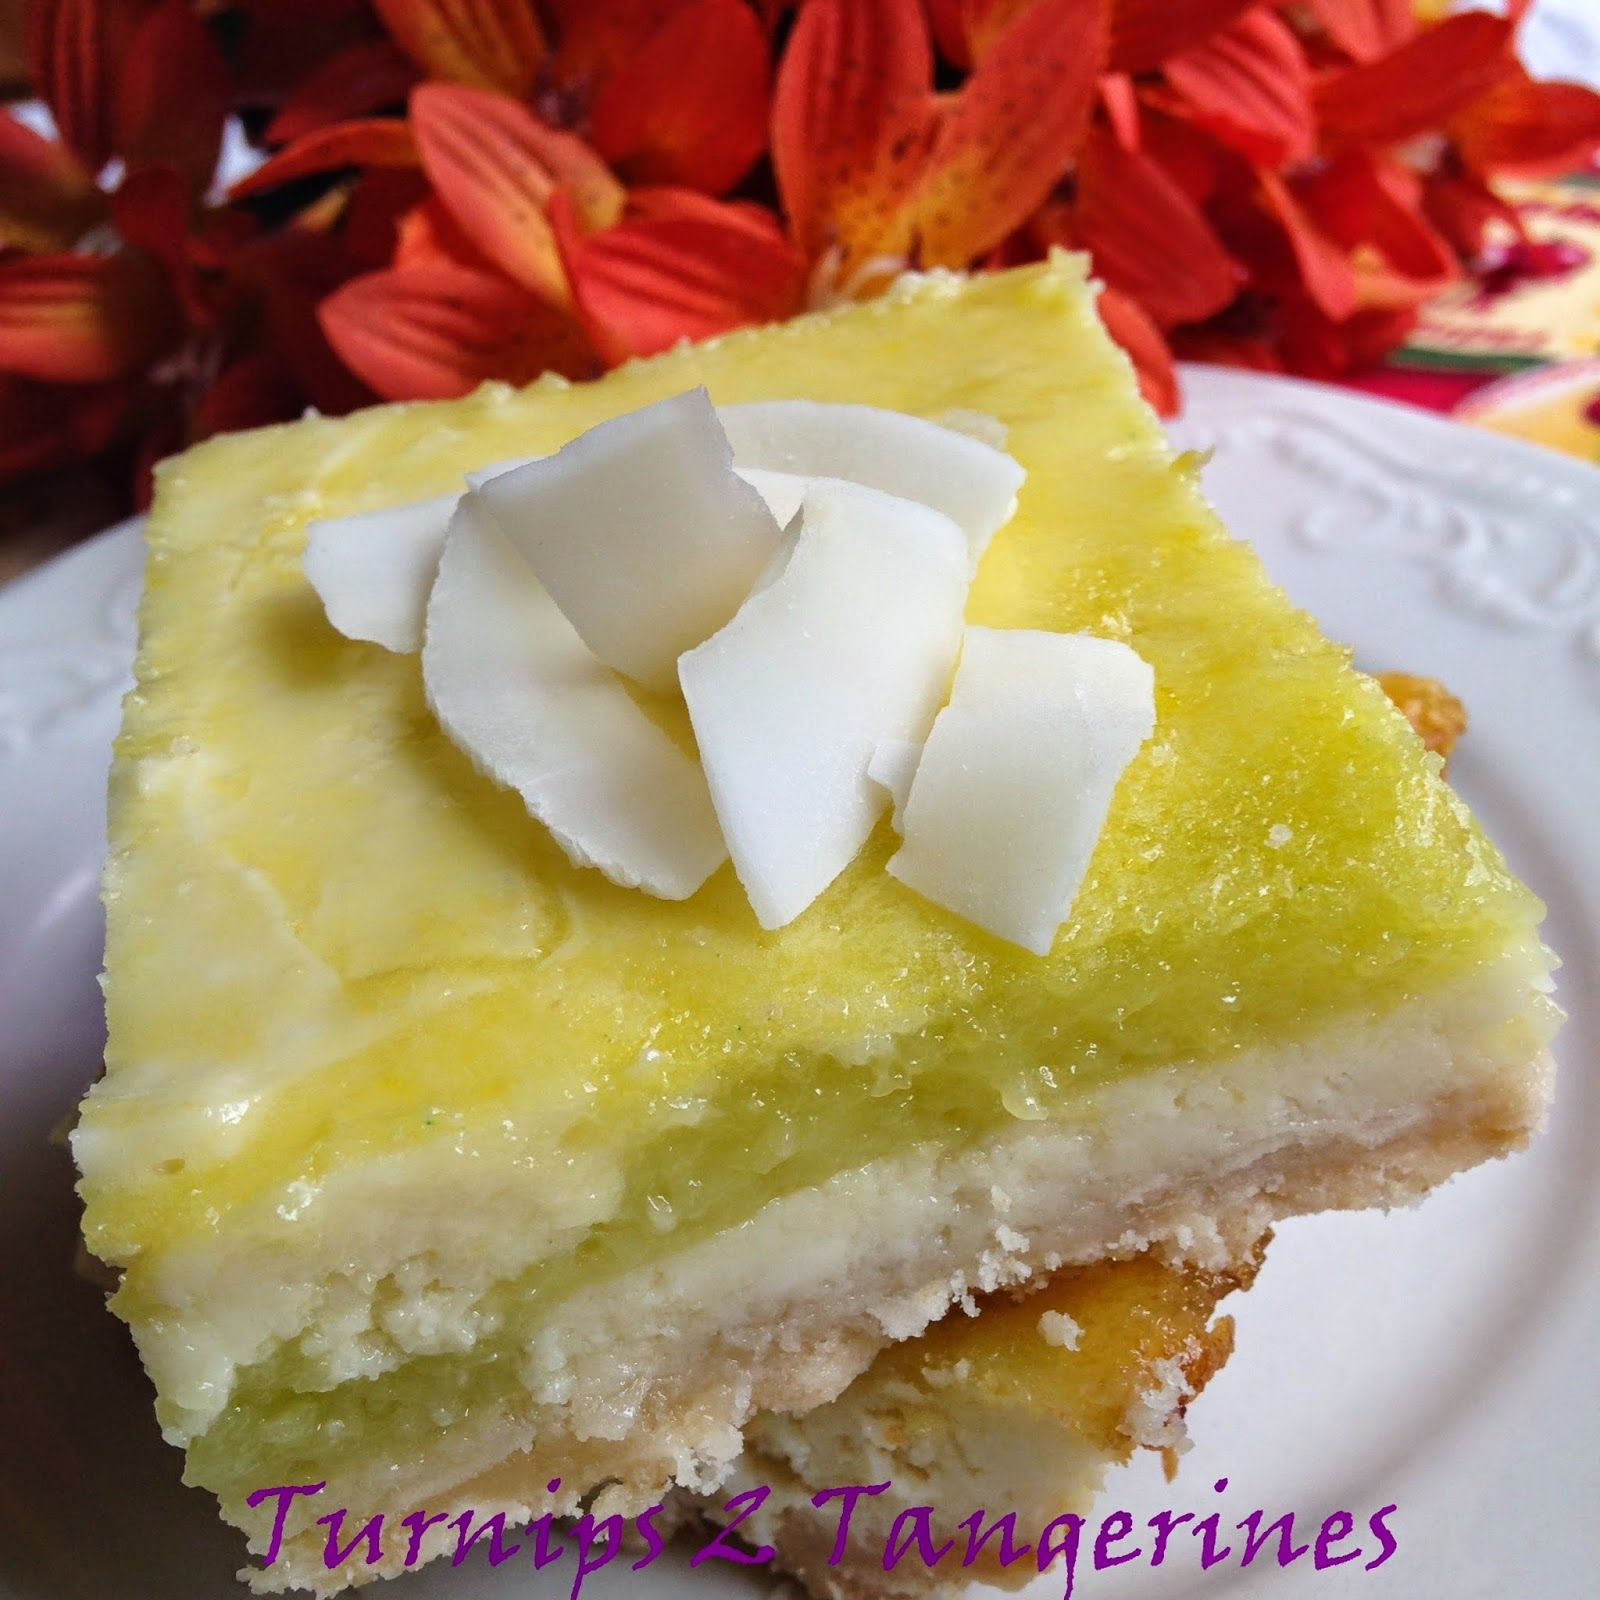 Turnips 2 Tangerines: Key Lime Cheesecake Bars with Toasted Coconut Crus...